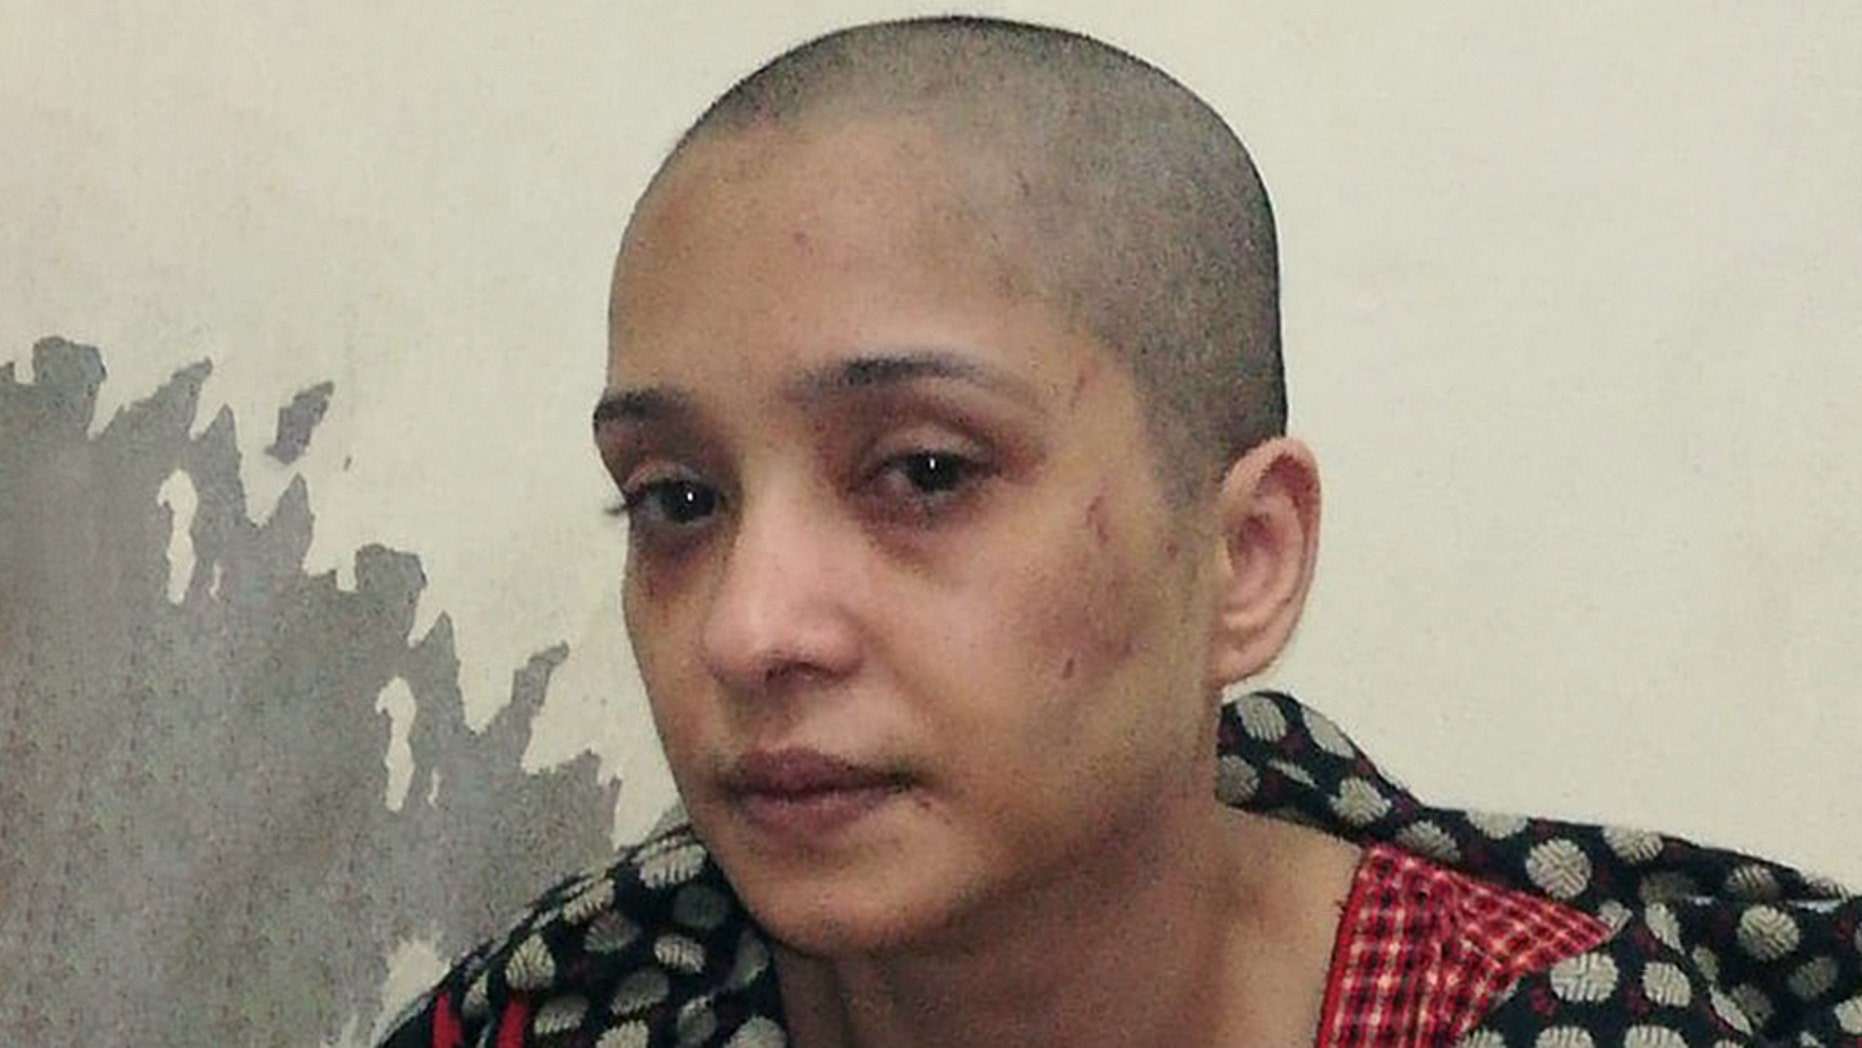 Asma Aziz, a Pakistani woman, accused her husband in a video she posted online of beating her and shaving her head after she refused to dance for him and his friends.